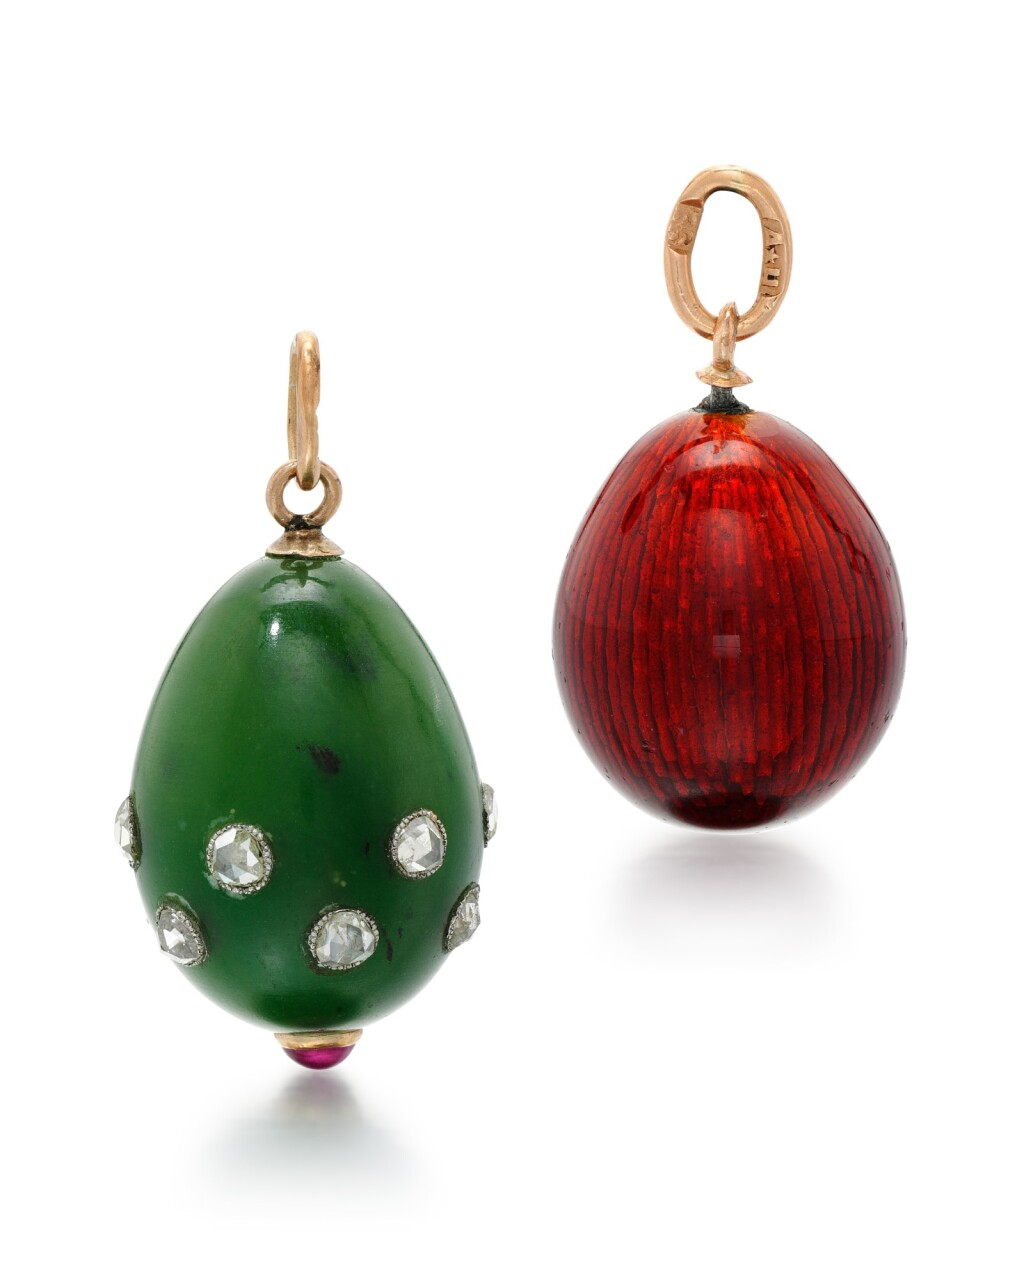 TWO JEWELLED FABERGÉ GOLD, HARDSTONE AND GUILLOCHÉ ENAMEL EGG PENDANTS, WORKMASTERS FEODOR AFANASSIEV AND AUGUST HOLLMING, ST PETERSBURG, CIRCA 1900